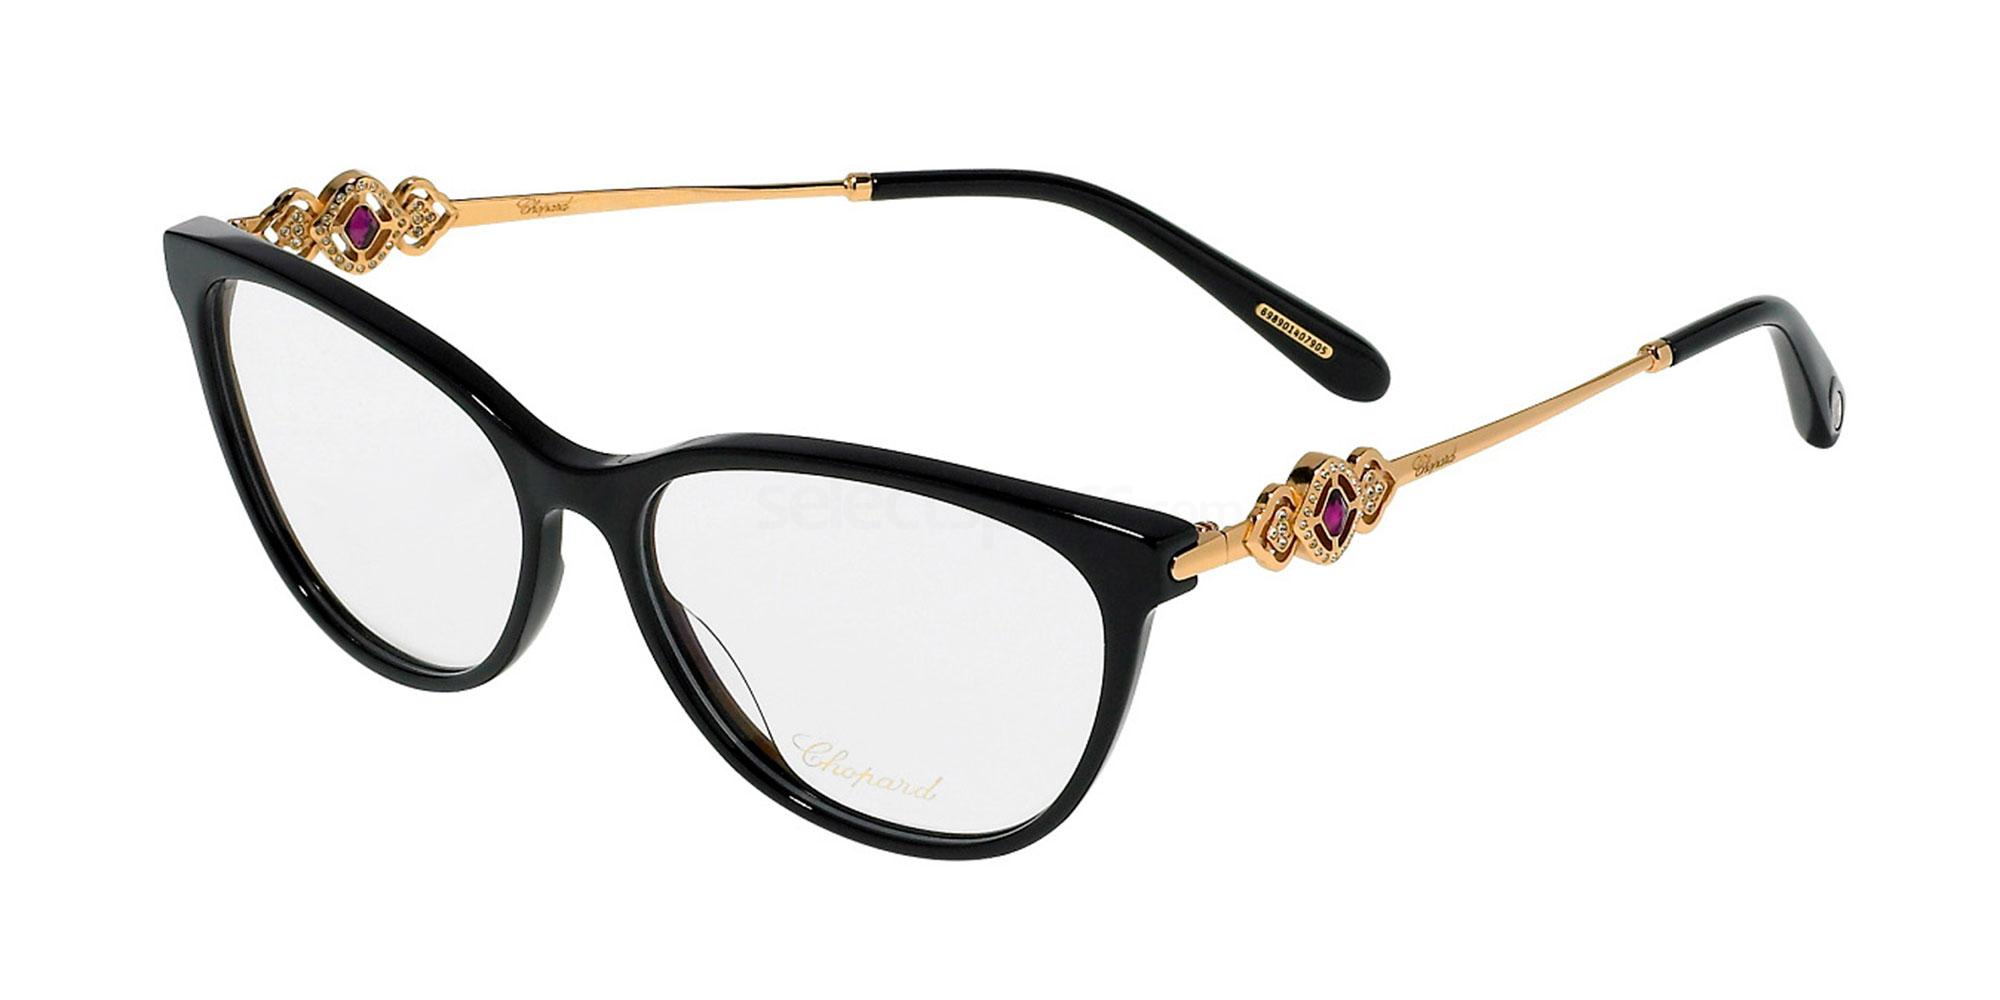 0700 VCH265S Glasses, Chopard